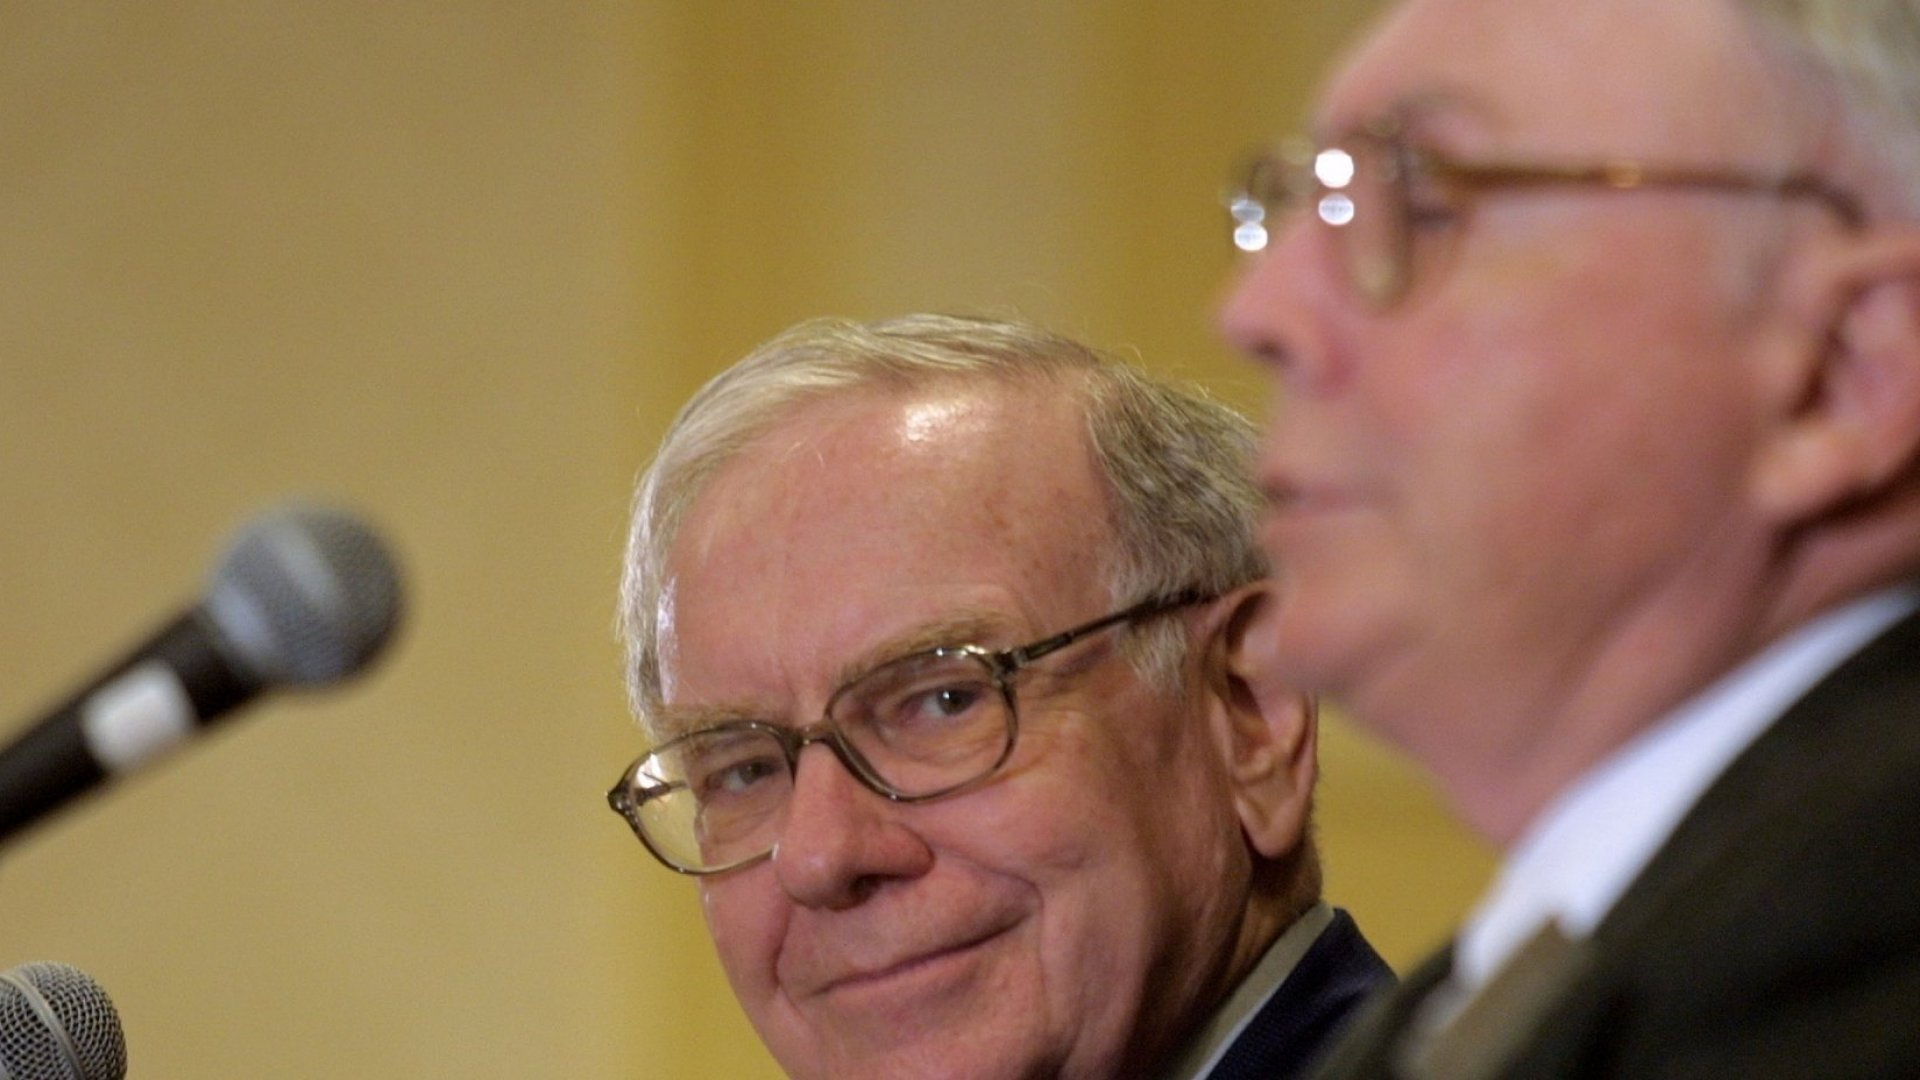 Billionaire Charlie Munger Says Admitting Failure Is Key to Success. Here Are 5 Ways to Embrace Failure